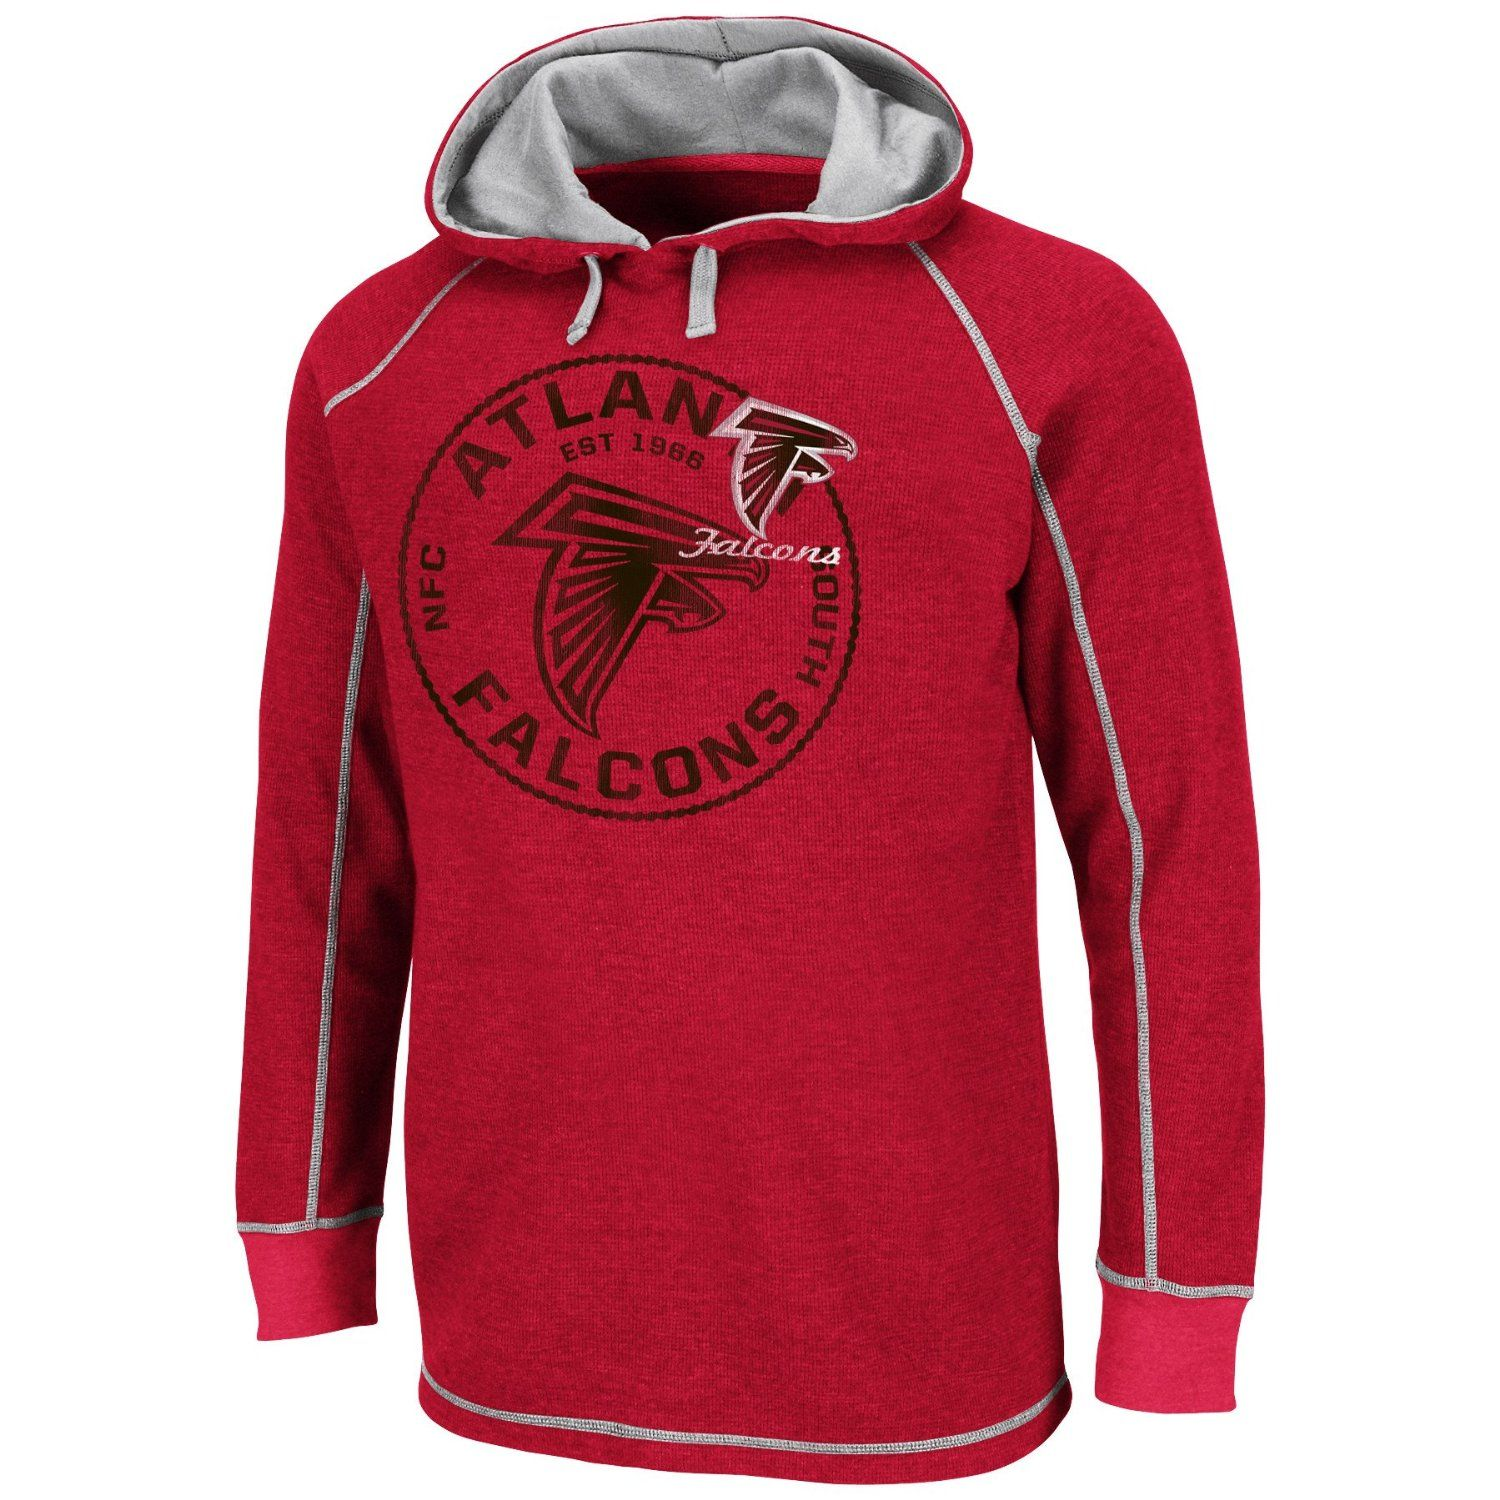 NFL Atlanta Falcons Men's Team Spotlight II Long Sleeve Pull Over, Bright Cardinal/Steel, Large - See more at: http://sports.florentta.com/sports-outdoors/nfl-atlanta-falcons-men39s-team-spotlight-ii-long-sleeve-pull-over-bright-cardinalsteel-large-com/#sthash.bST42baz.dpuf